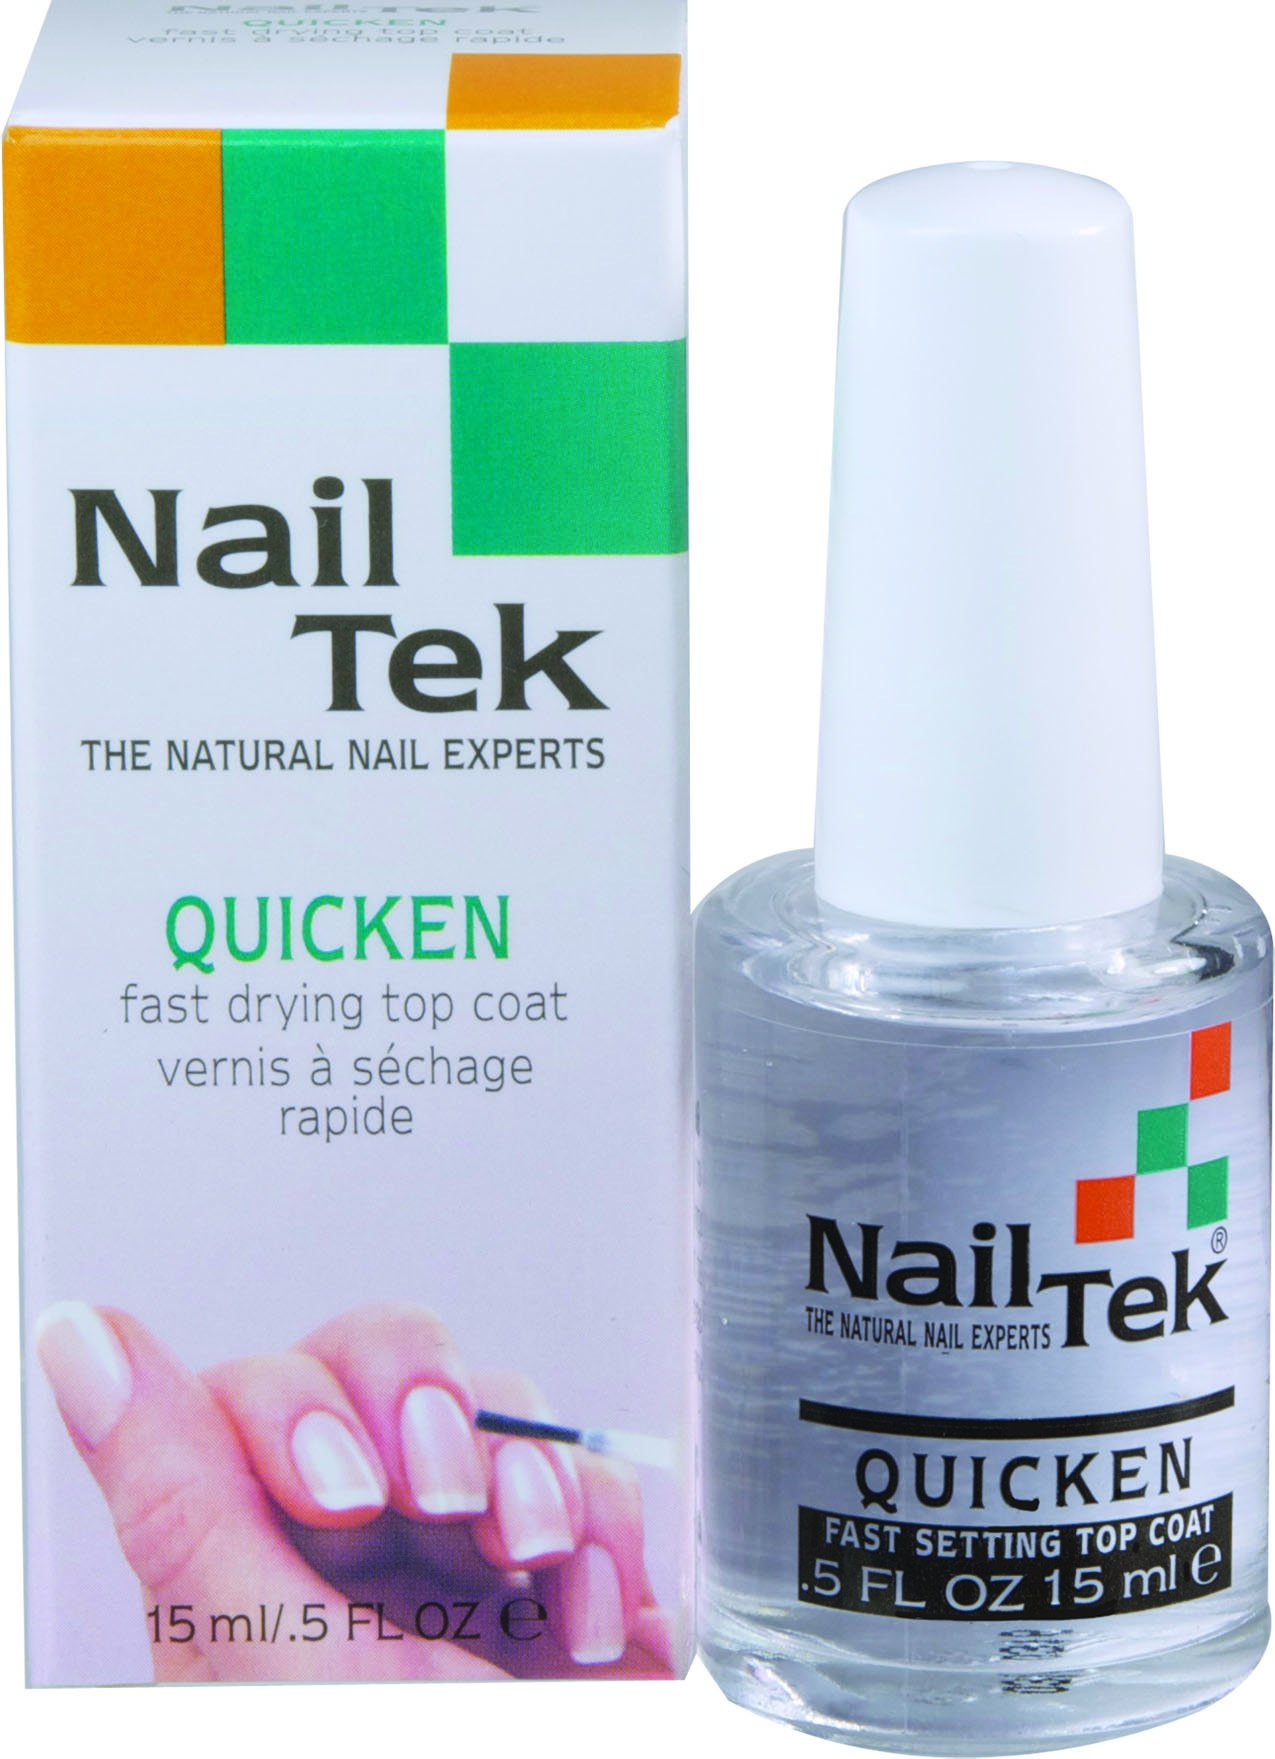 Nailtek Quicken Fast Drying Top Coat, 0.5 Fluid Ounce